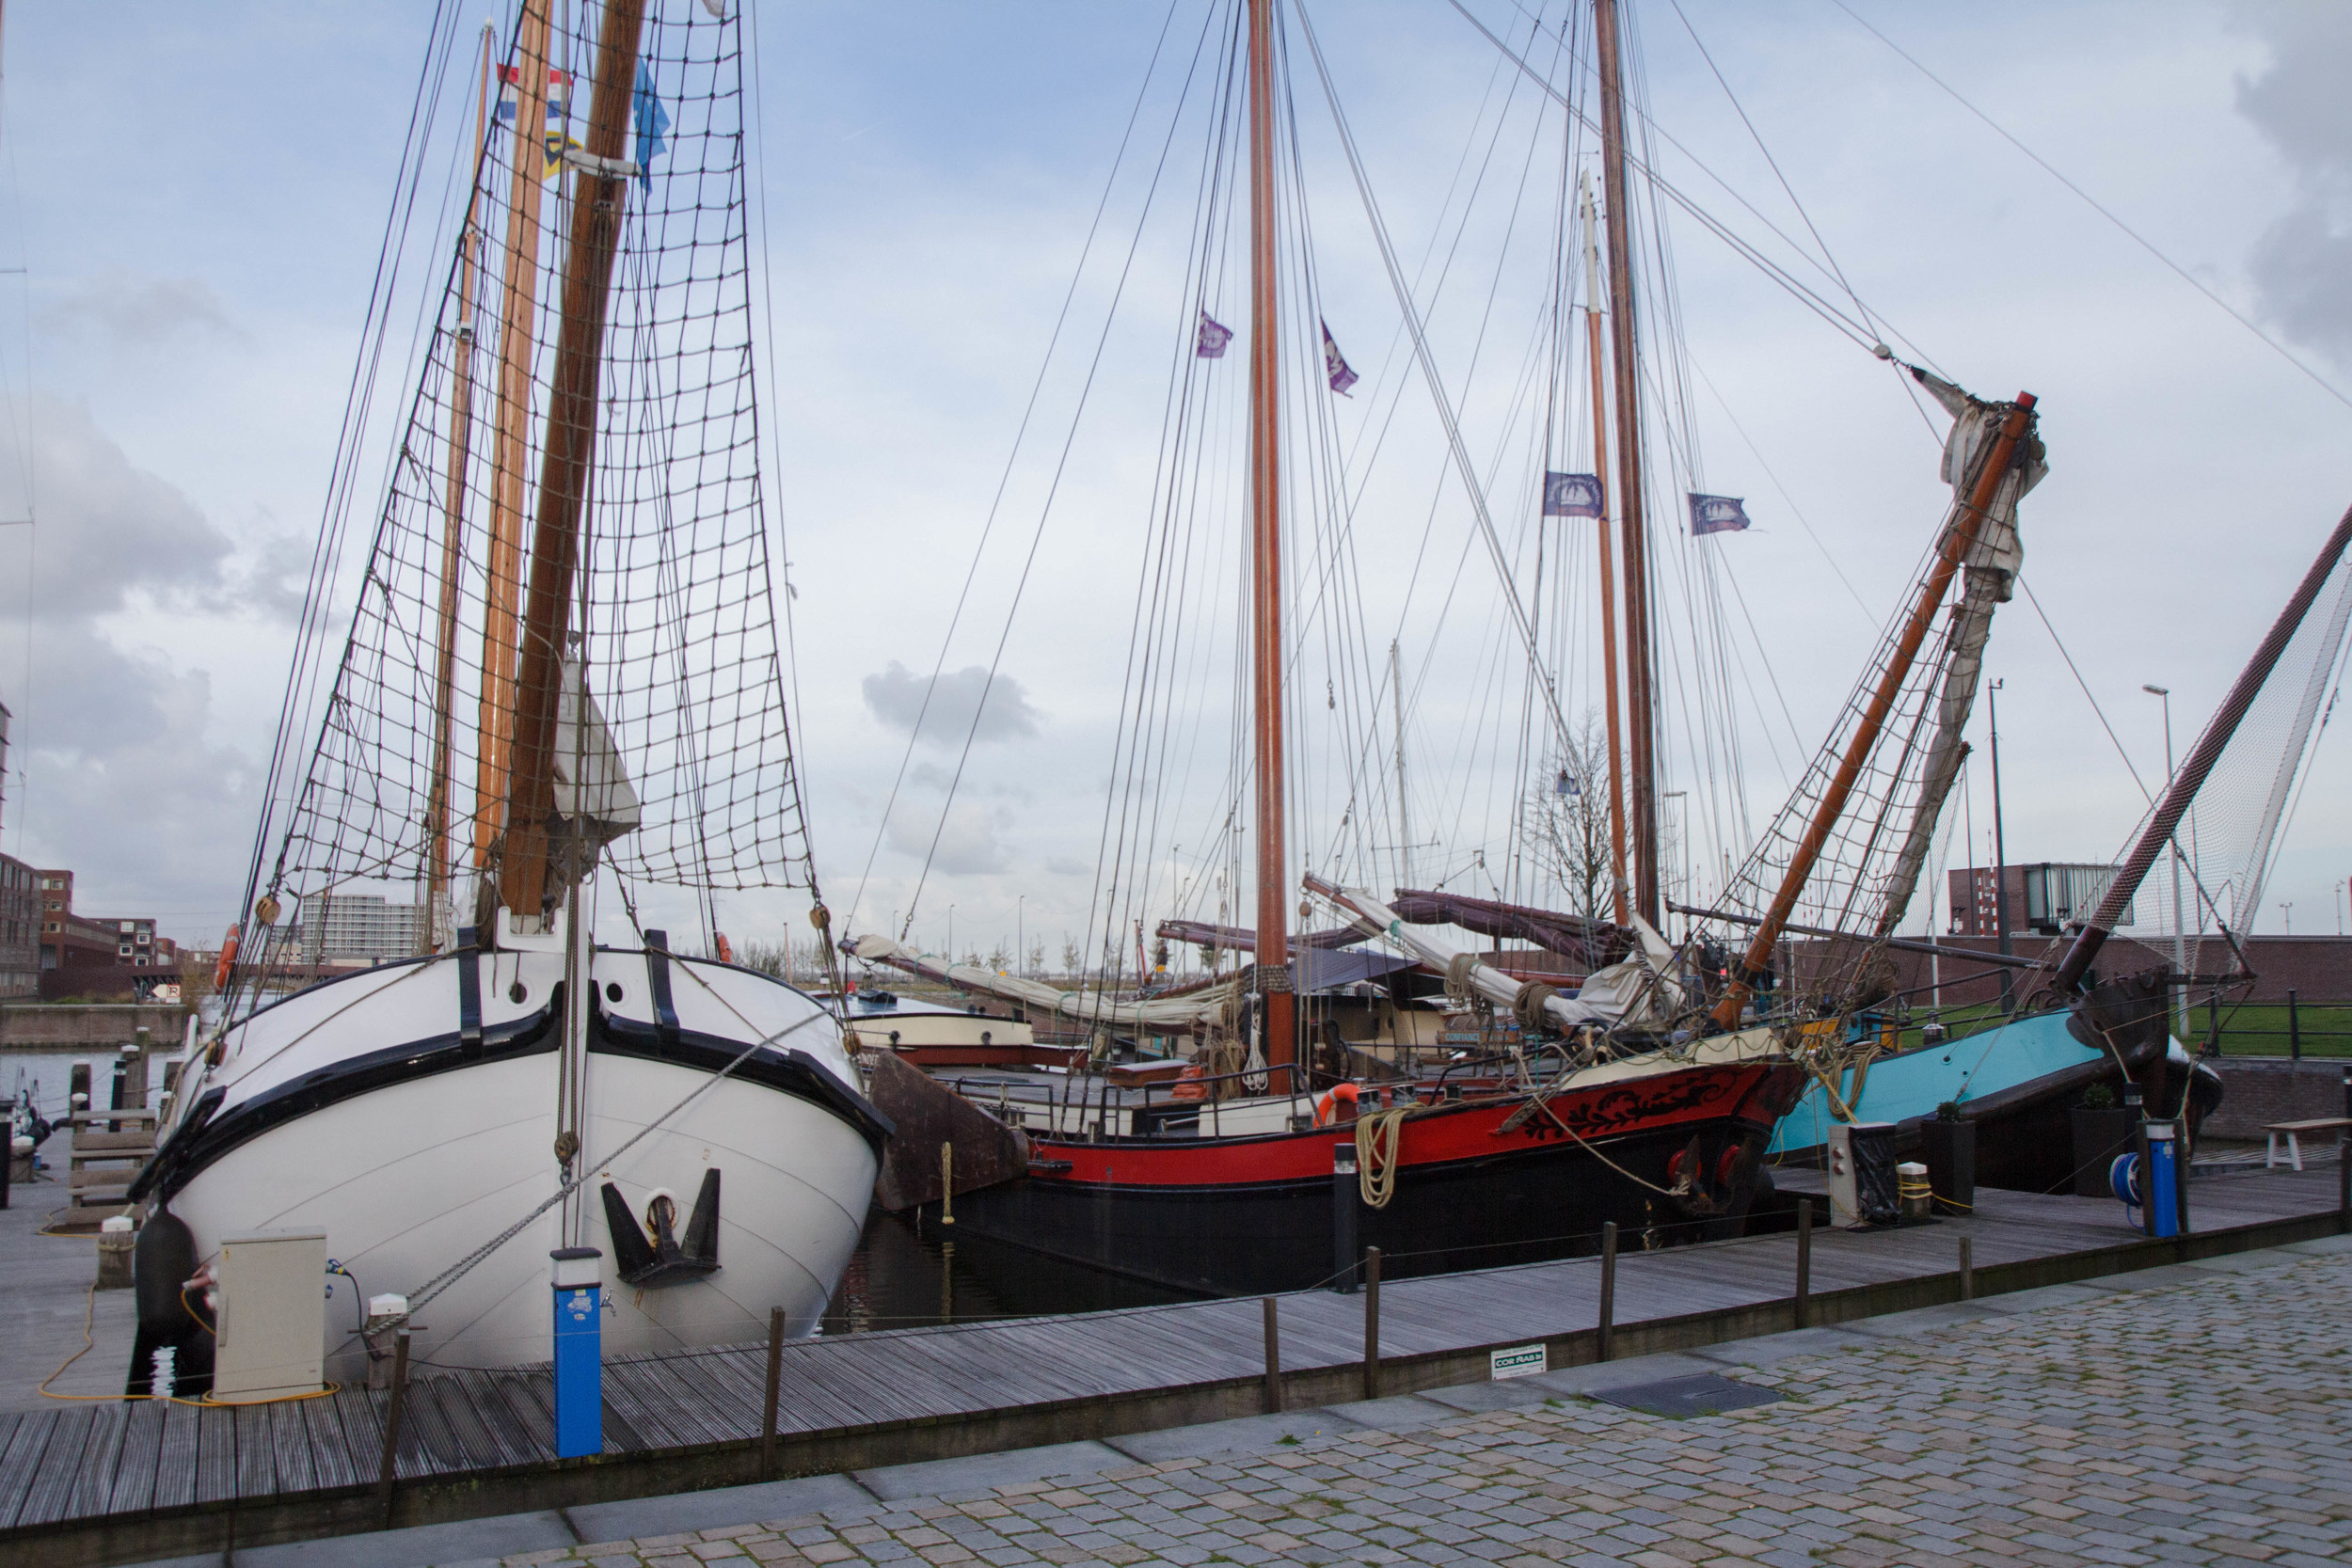 Moored by the island of Ijburg:A + A headquarters for three days.